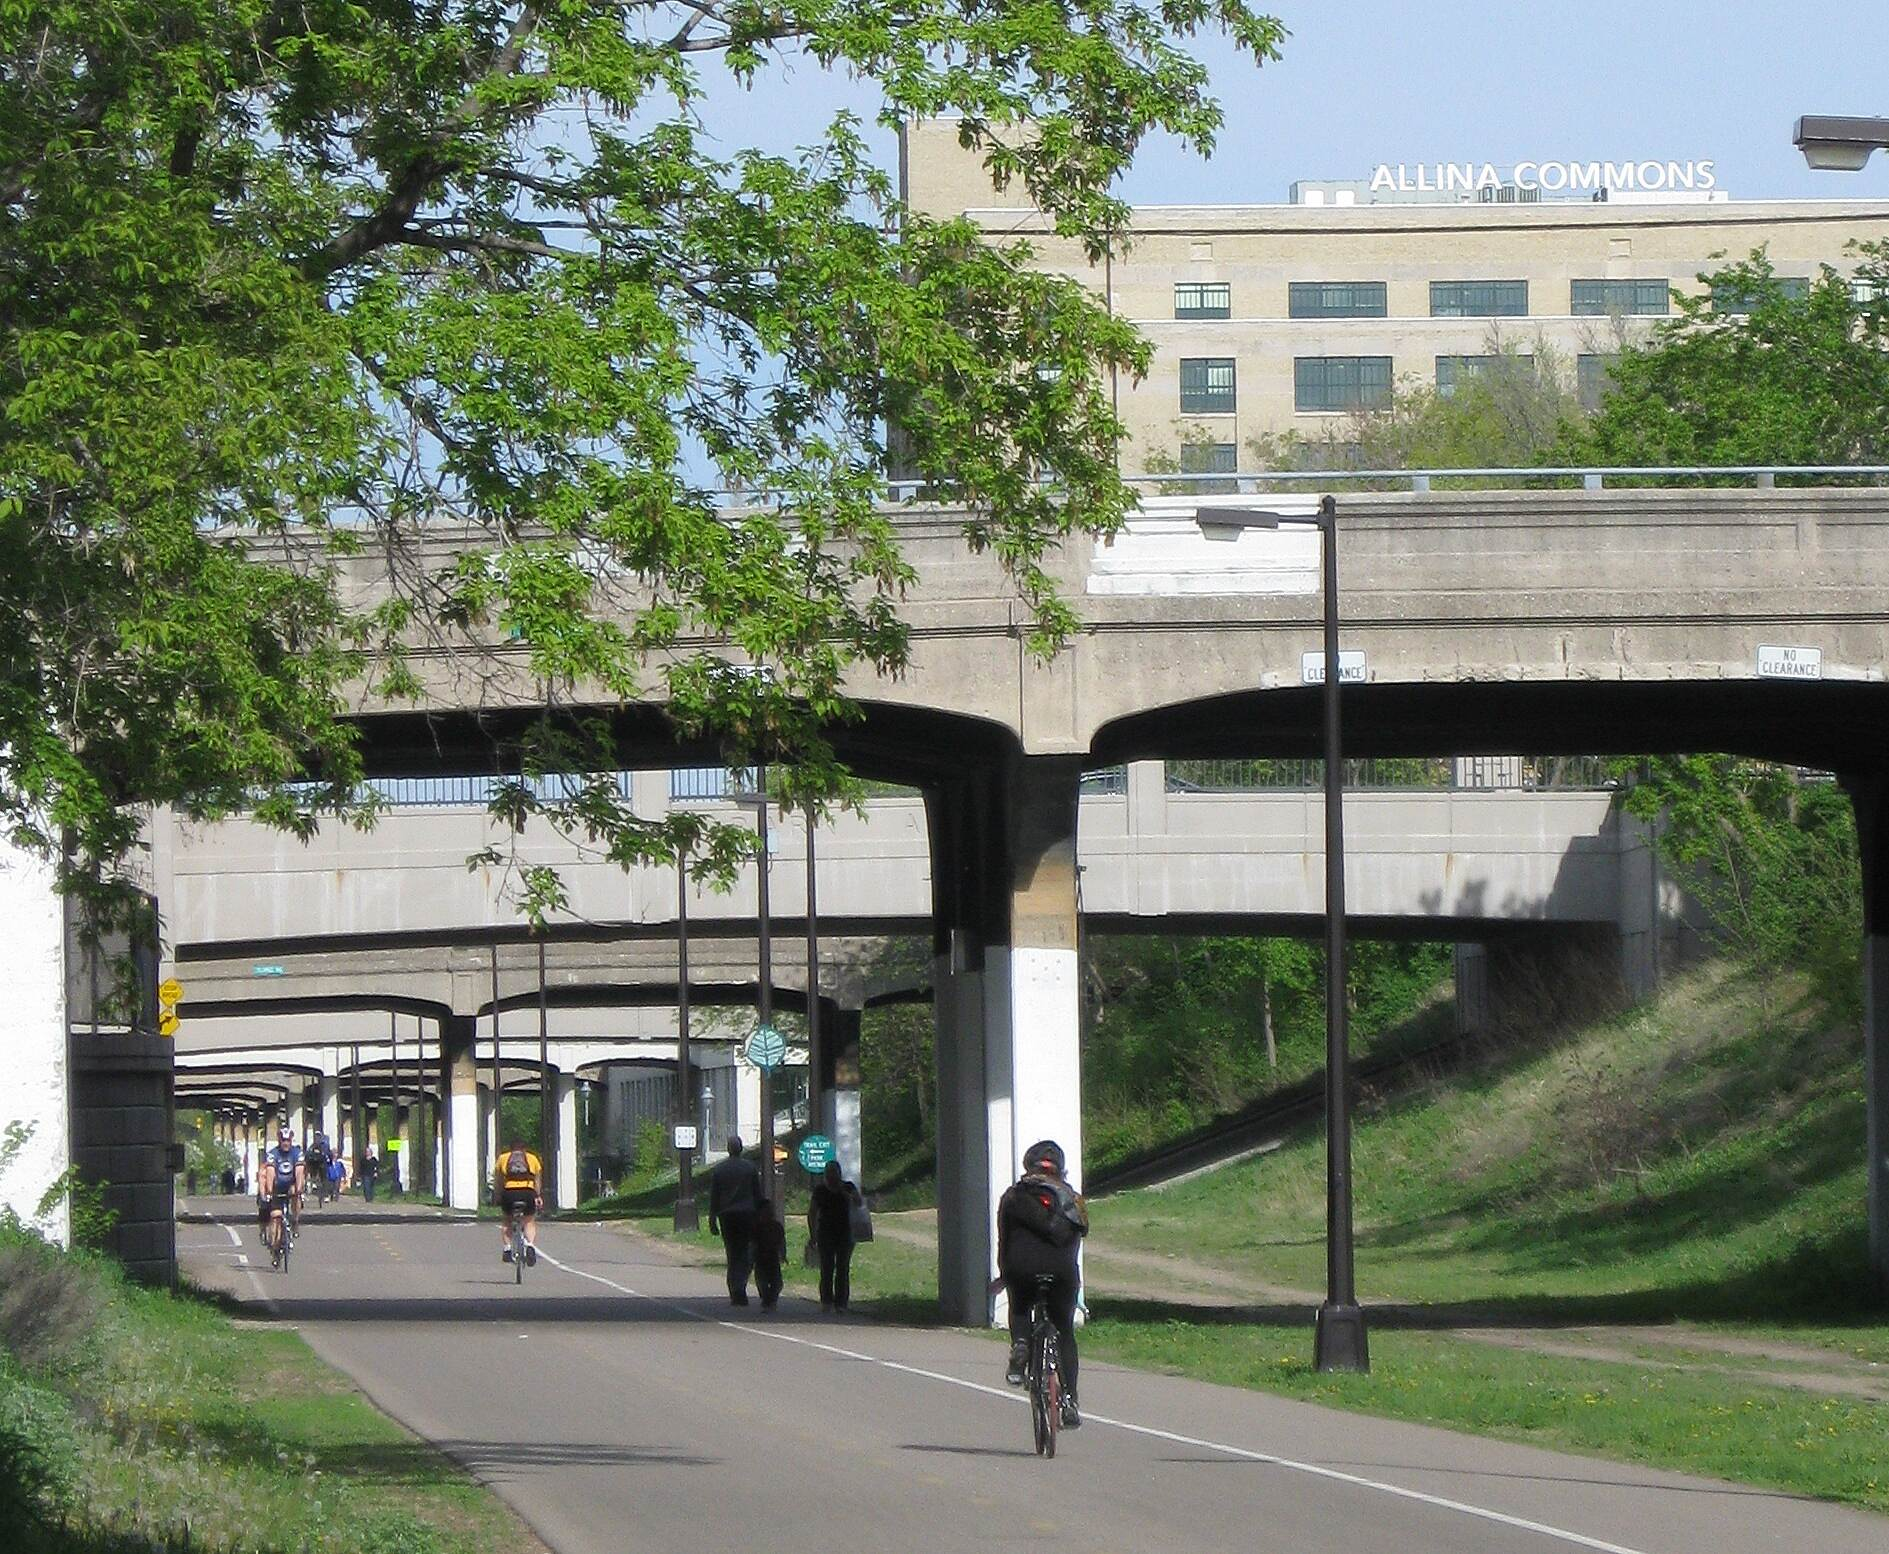 Midtown Greenway (MN) The trail near Chicago Avenue Photo courtesy Midtown Greenway Coalition